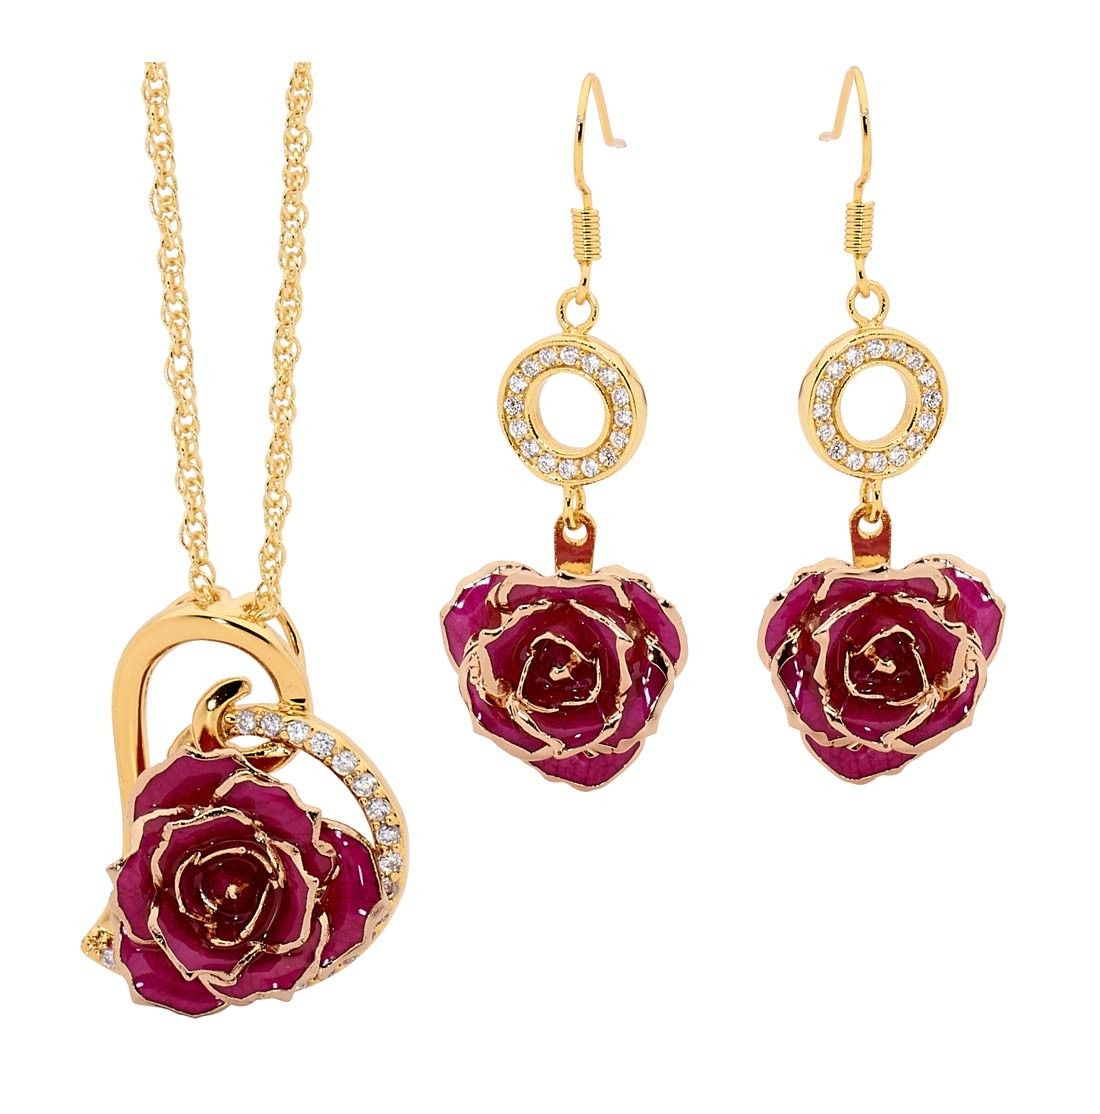 Purple Matching Pendant and Earring Set - Heart Theme 24K Gold a4bee186d0